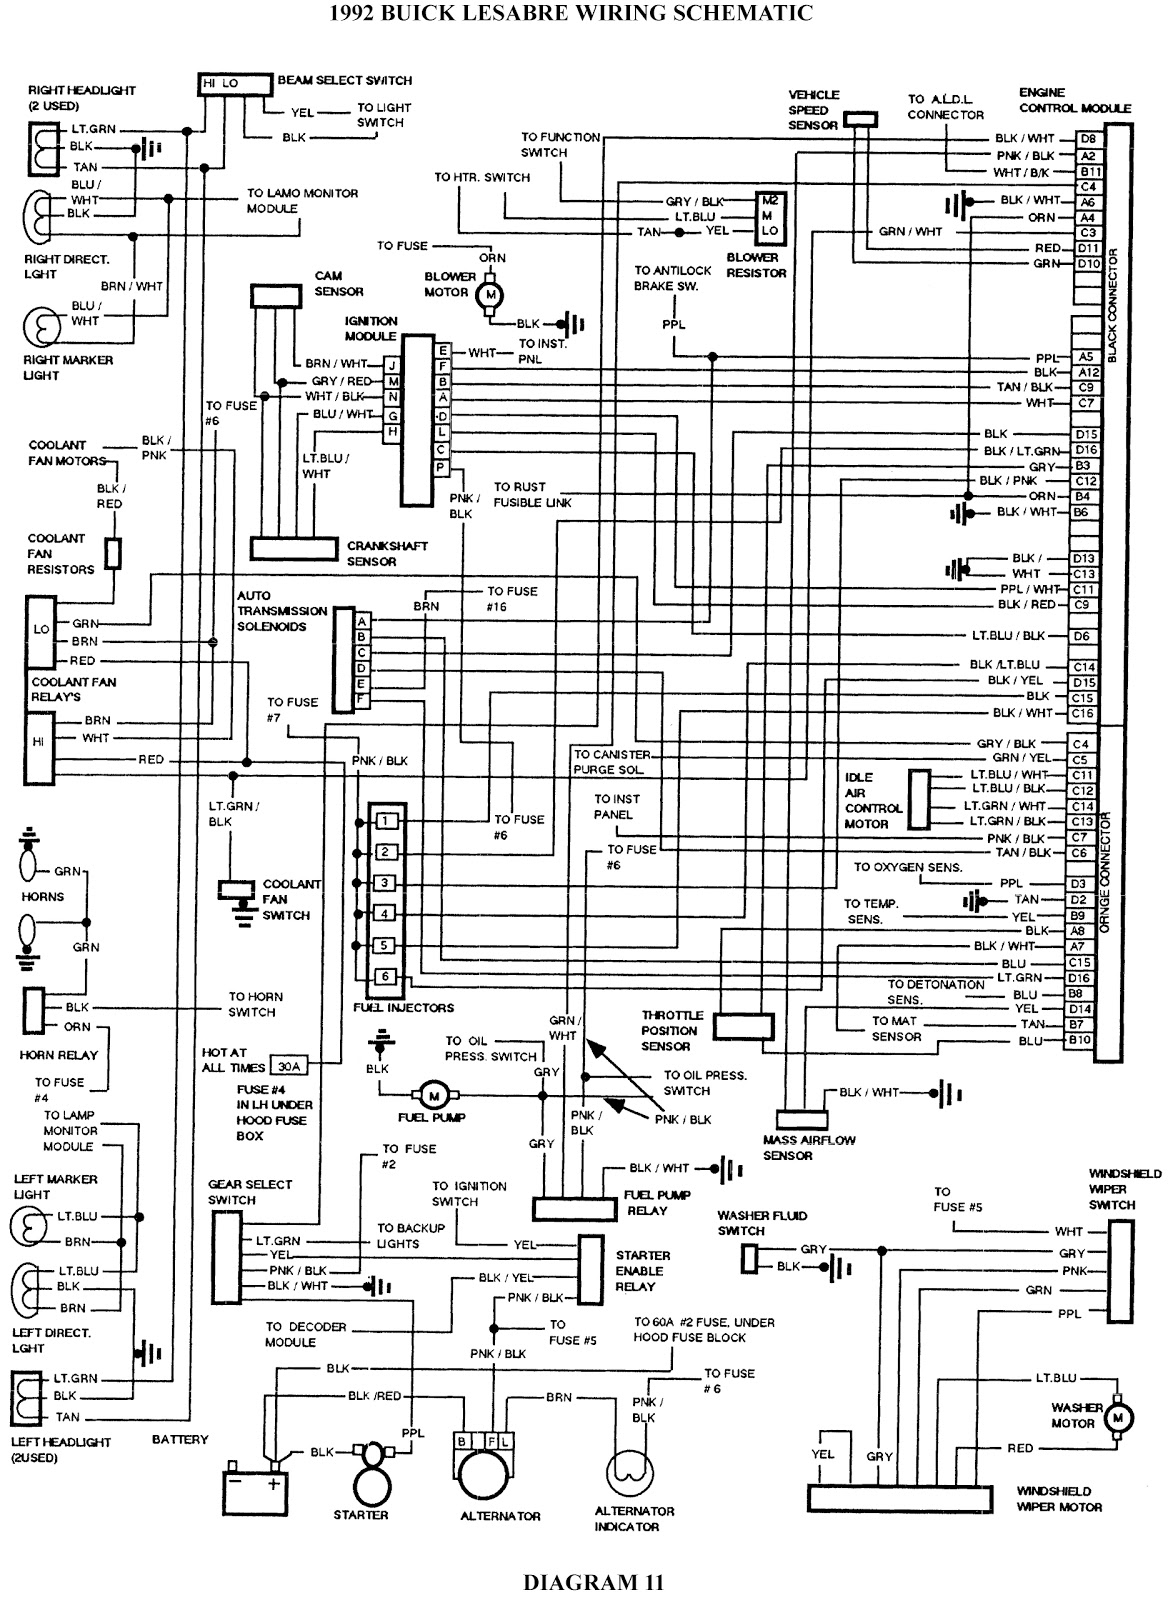 [DIAGRAM_09CH]  7354 1992 Buick Fuse Box Diagram | Wiring Library | 1992 Buick Fuse Box Diagram |  | Wiring Library